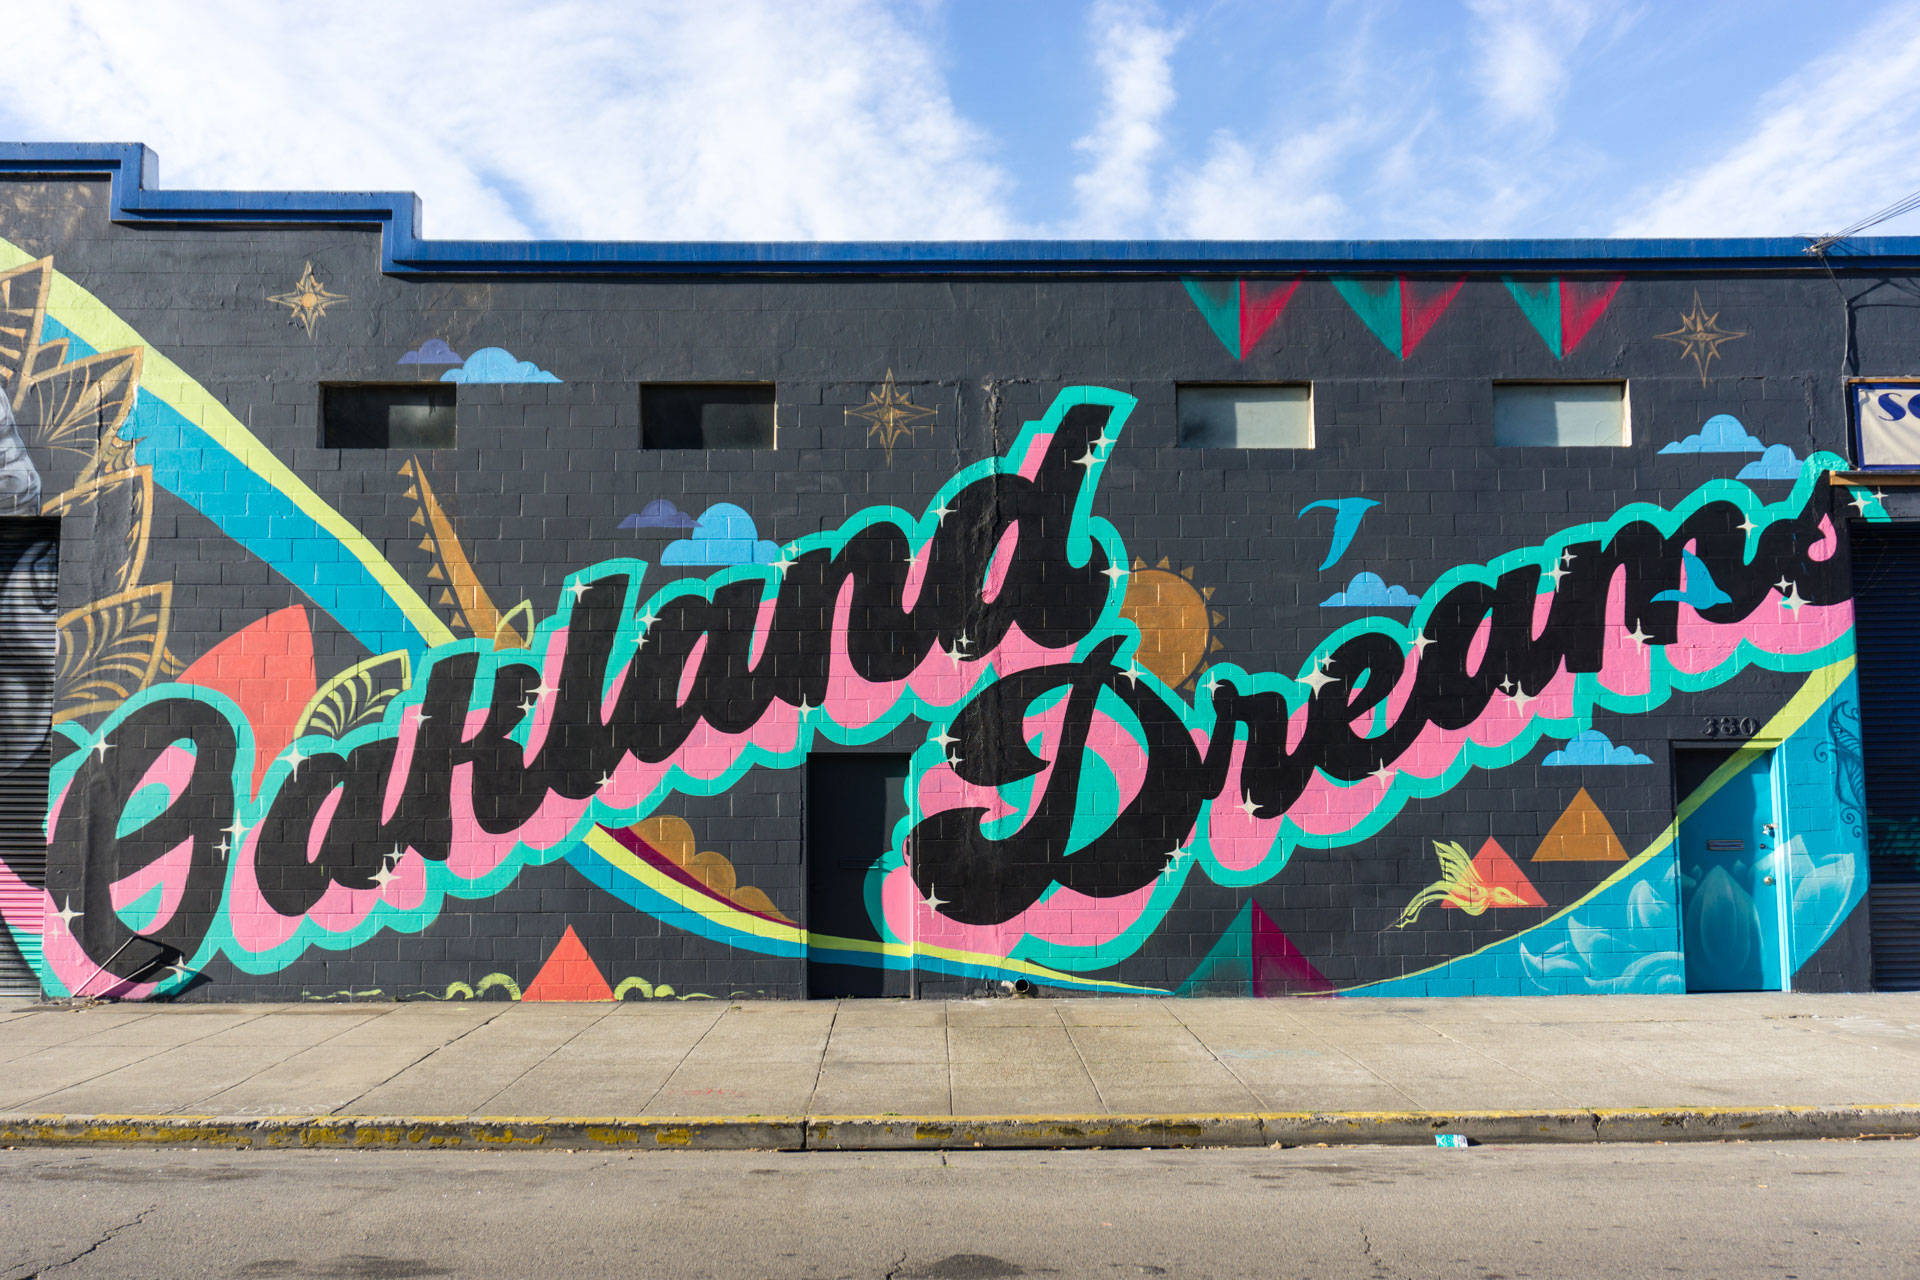 Oakland Dreams mural by Trust Your Struggle Collective as part of Oakland Mural Festival 2018. Lina Blanco / KQED